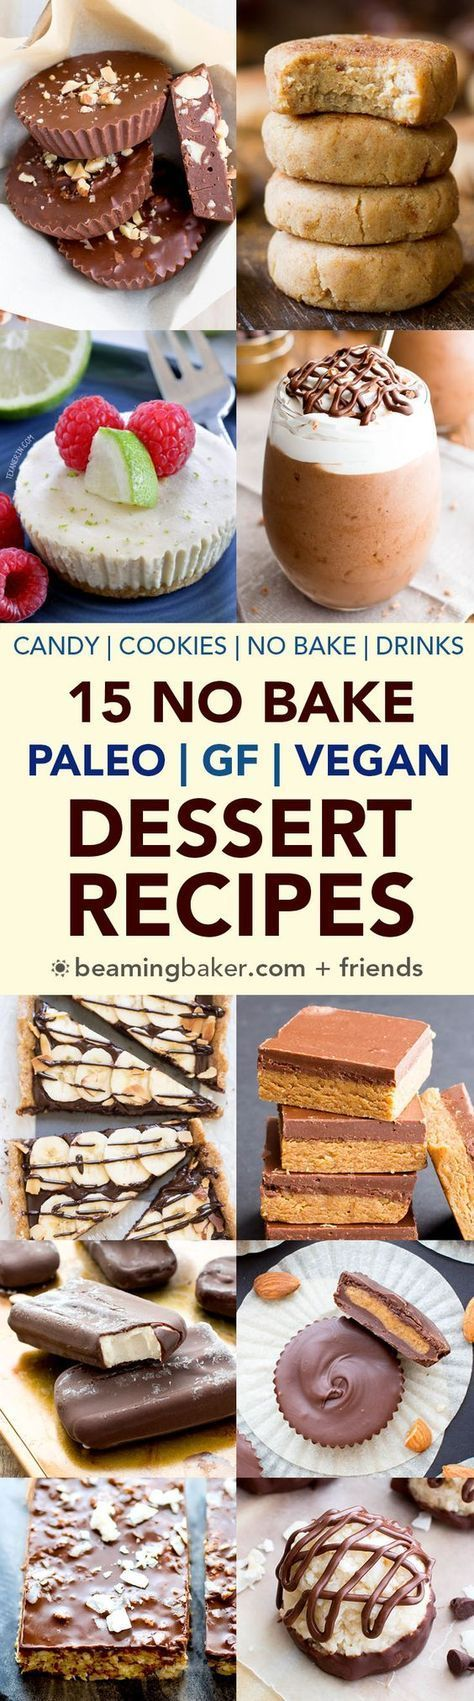 15 No Bake Paleo Vegan Desserts: a roundup of easy, delicious paleo vegan recipes that are delightfully no bake. #Paleo #Vegan #GlutenFree #DairyFree | BeamingBaker.com